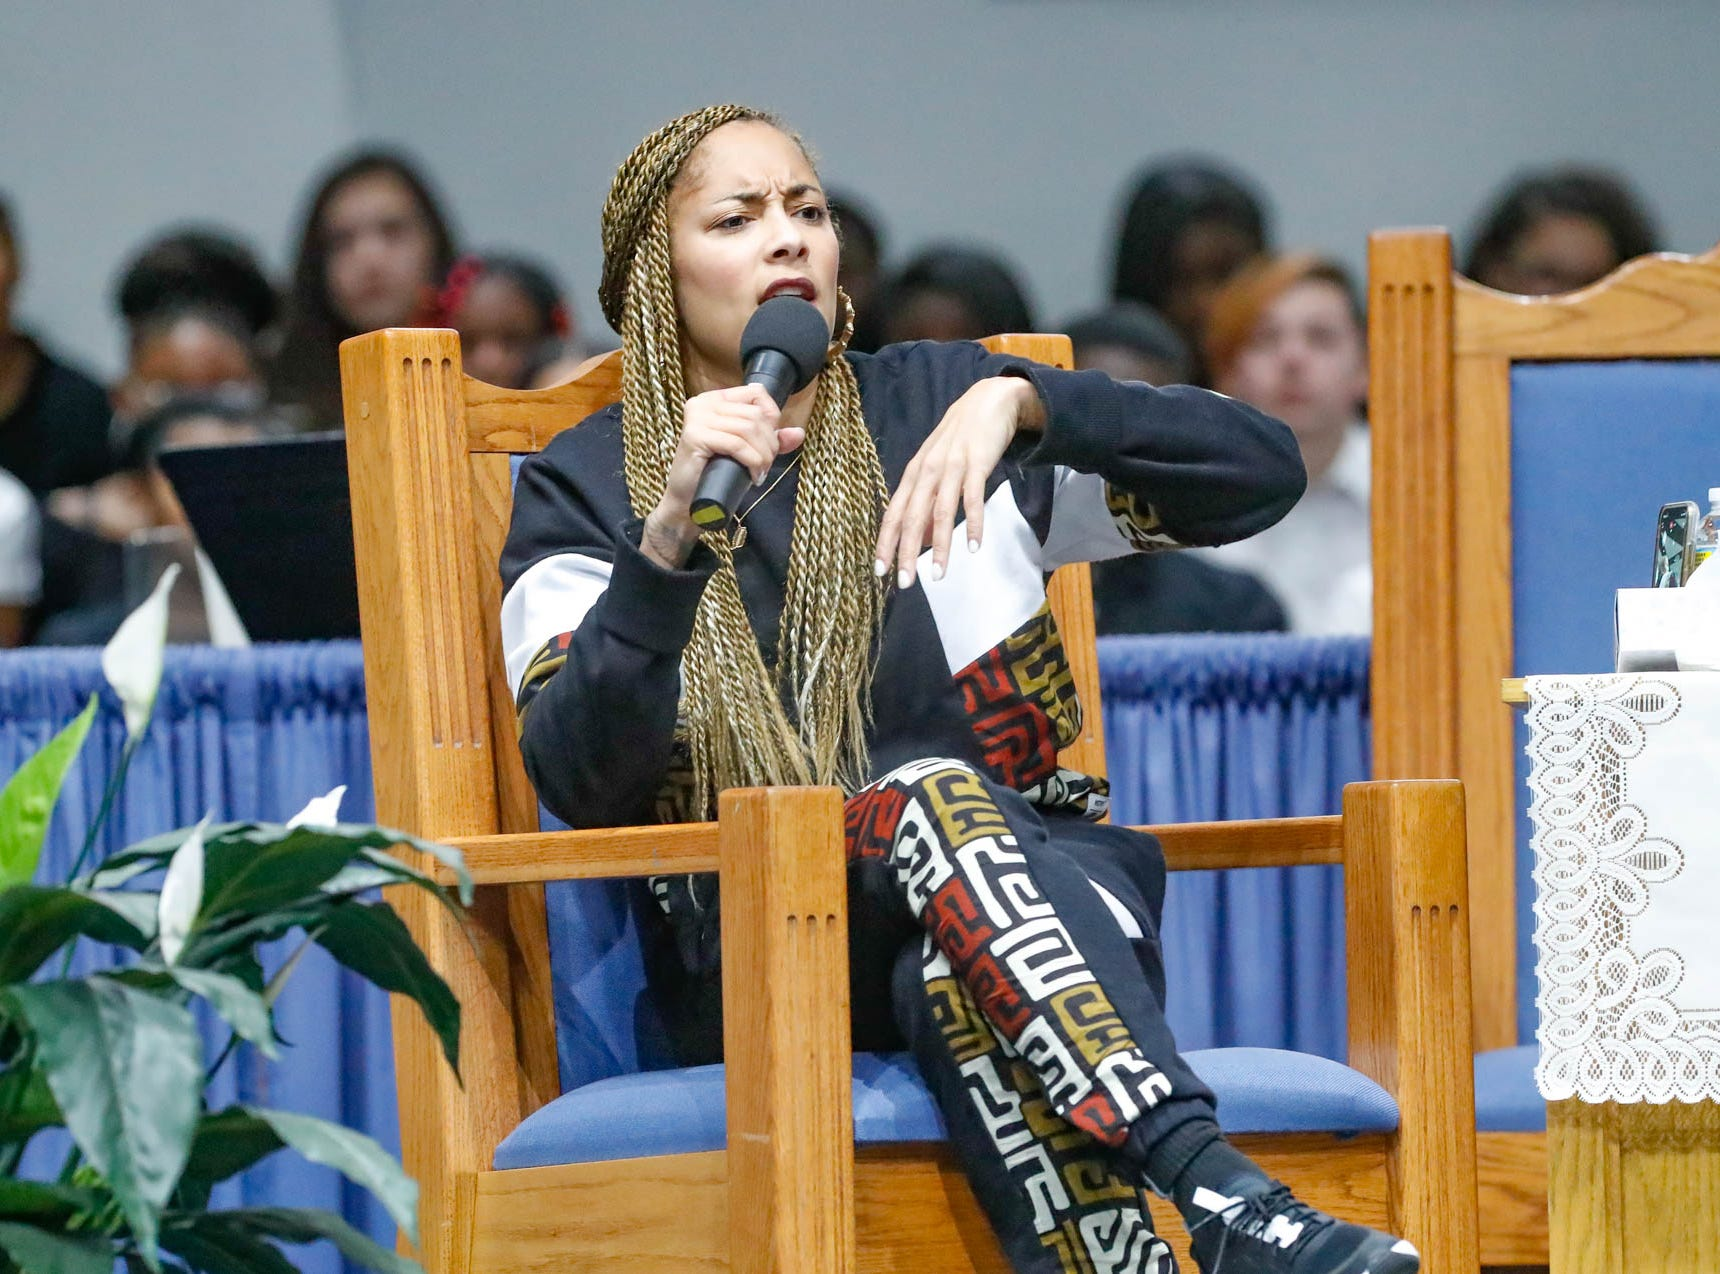 """American comedian, actress, disc jockey (DJ), recording artist and radio personality, Amanda Seales gives the keynote address during the annual Steward Speakers Lecture Series event, held at Olivet Missionary Baptist Church in Indianapolis on Thursday, Feb. 21, 2019. This years theme was """"Year of the woman""""."""